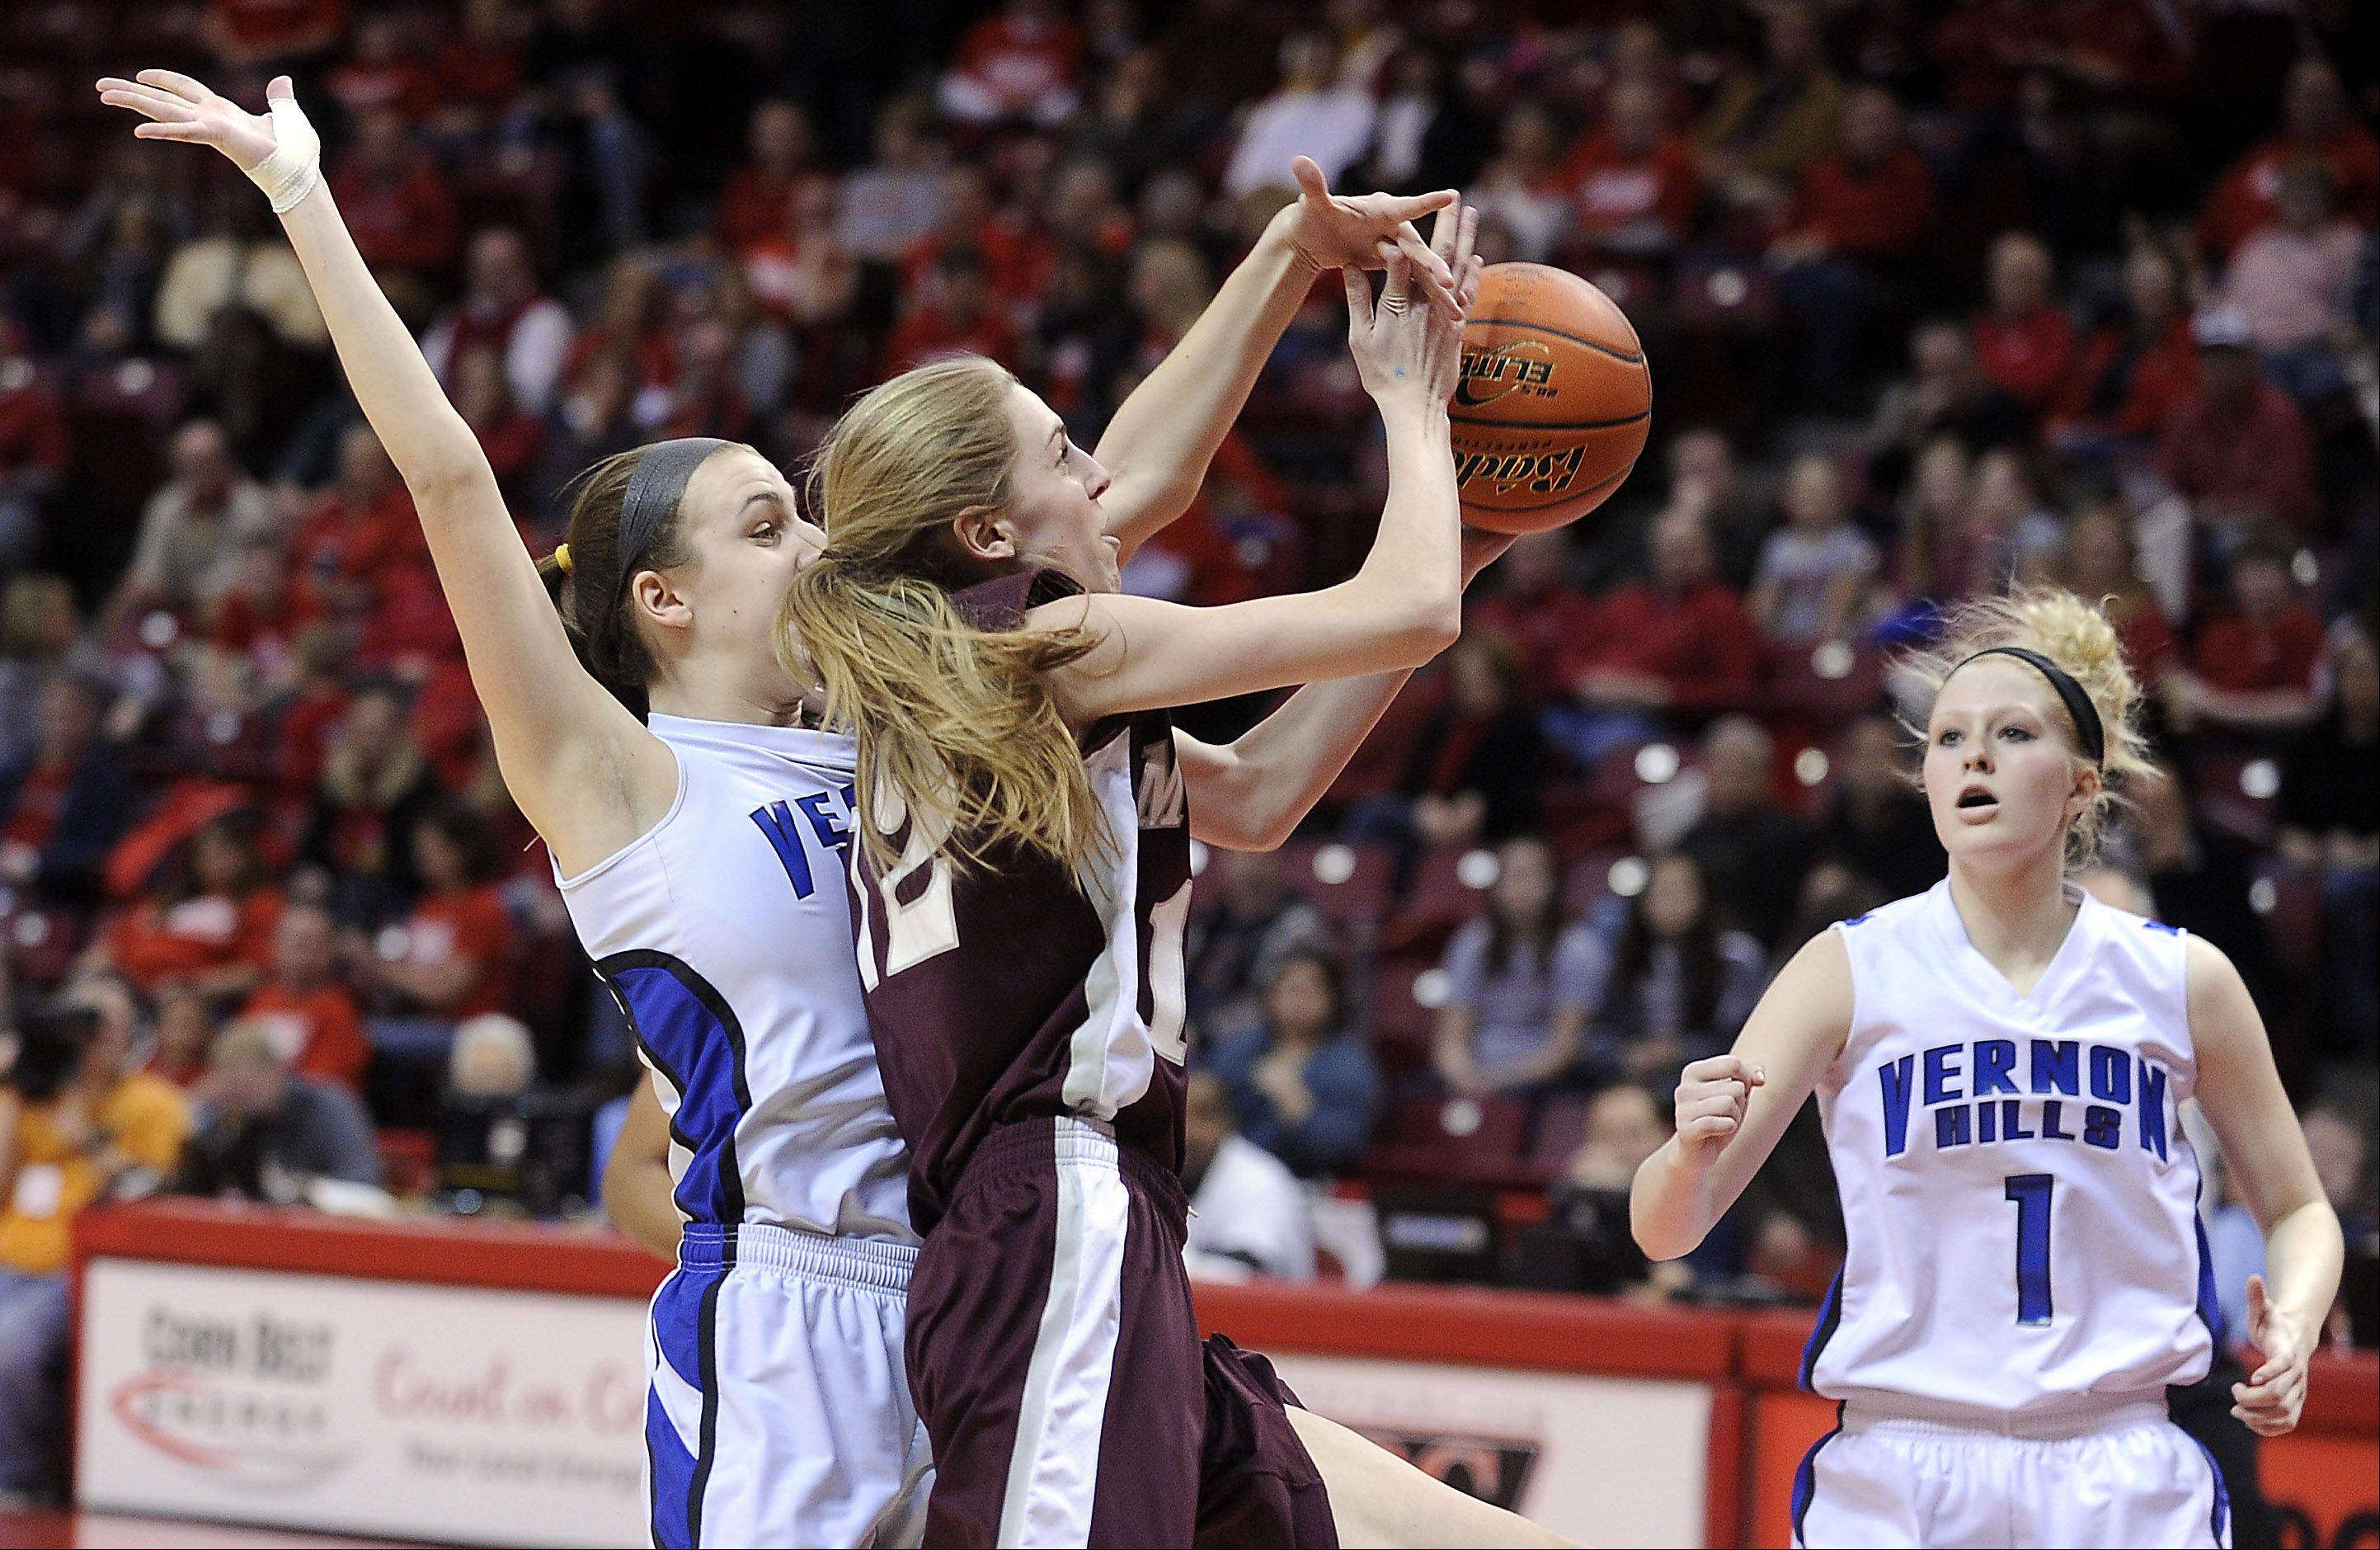 Vernon Hills Alina Lehocky fouls Montini's Kelly Harris in the third quarter.